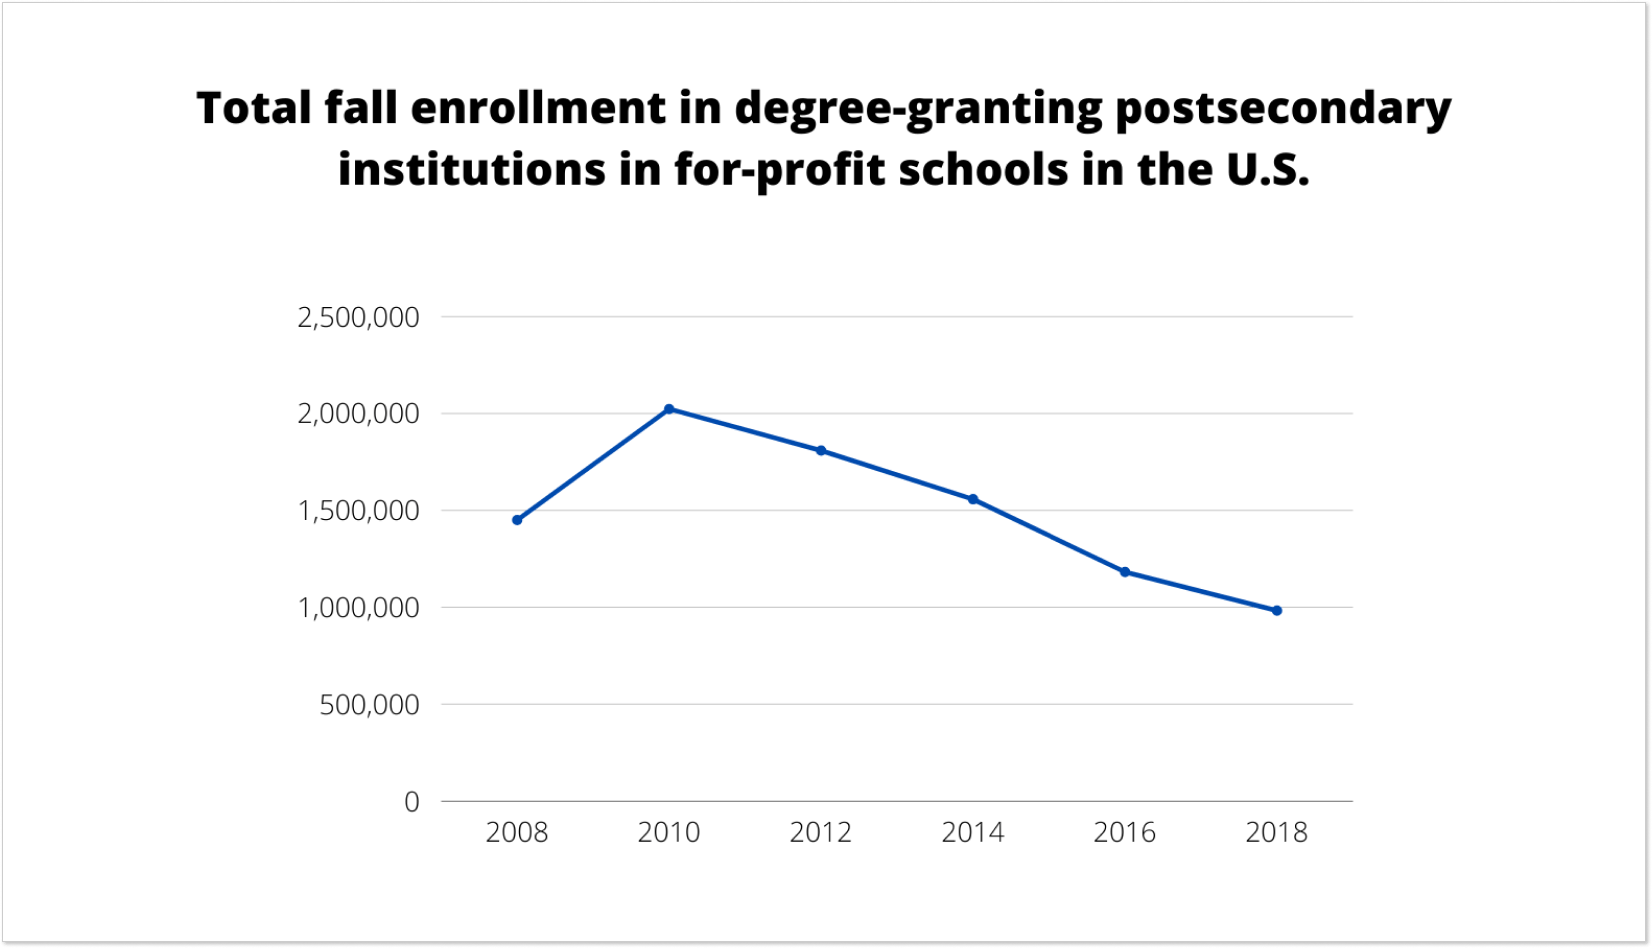 Total fall enrollment in for-profit schools in the U.S.